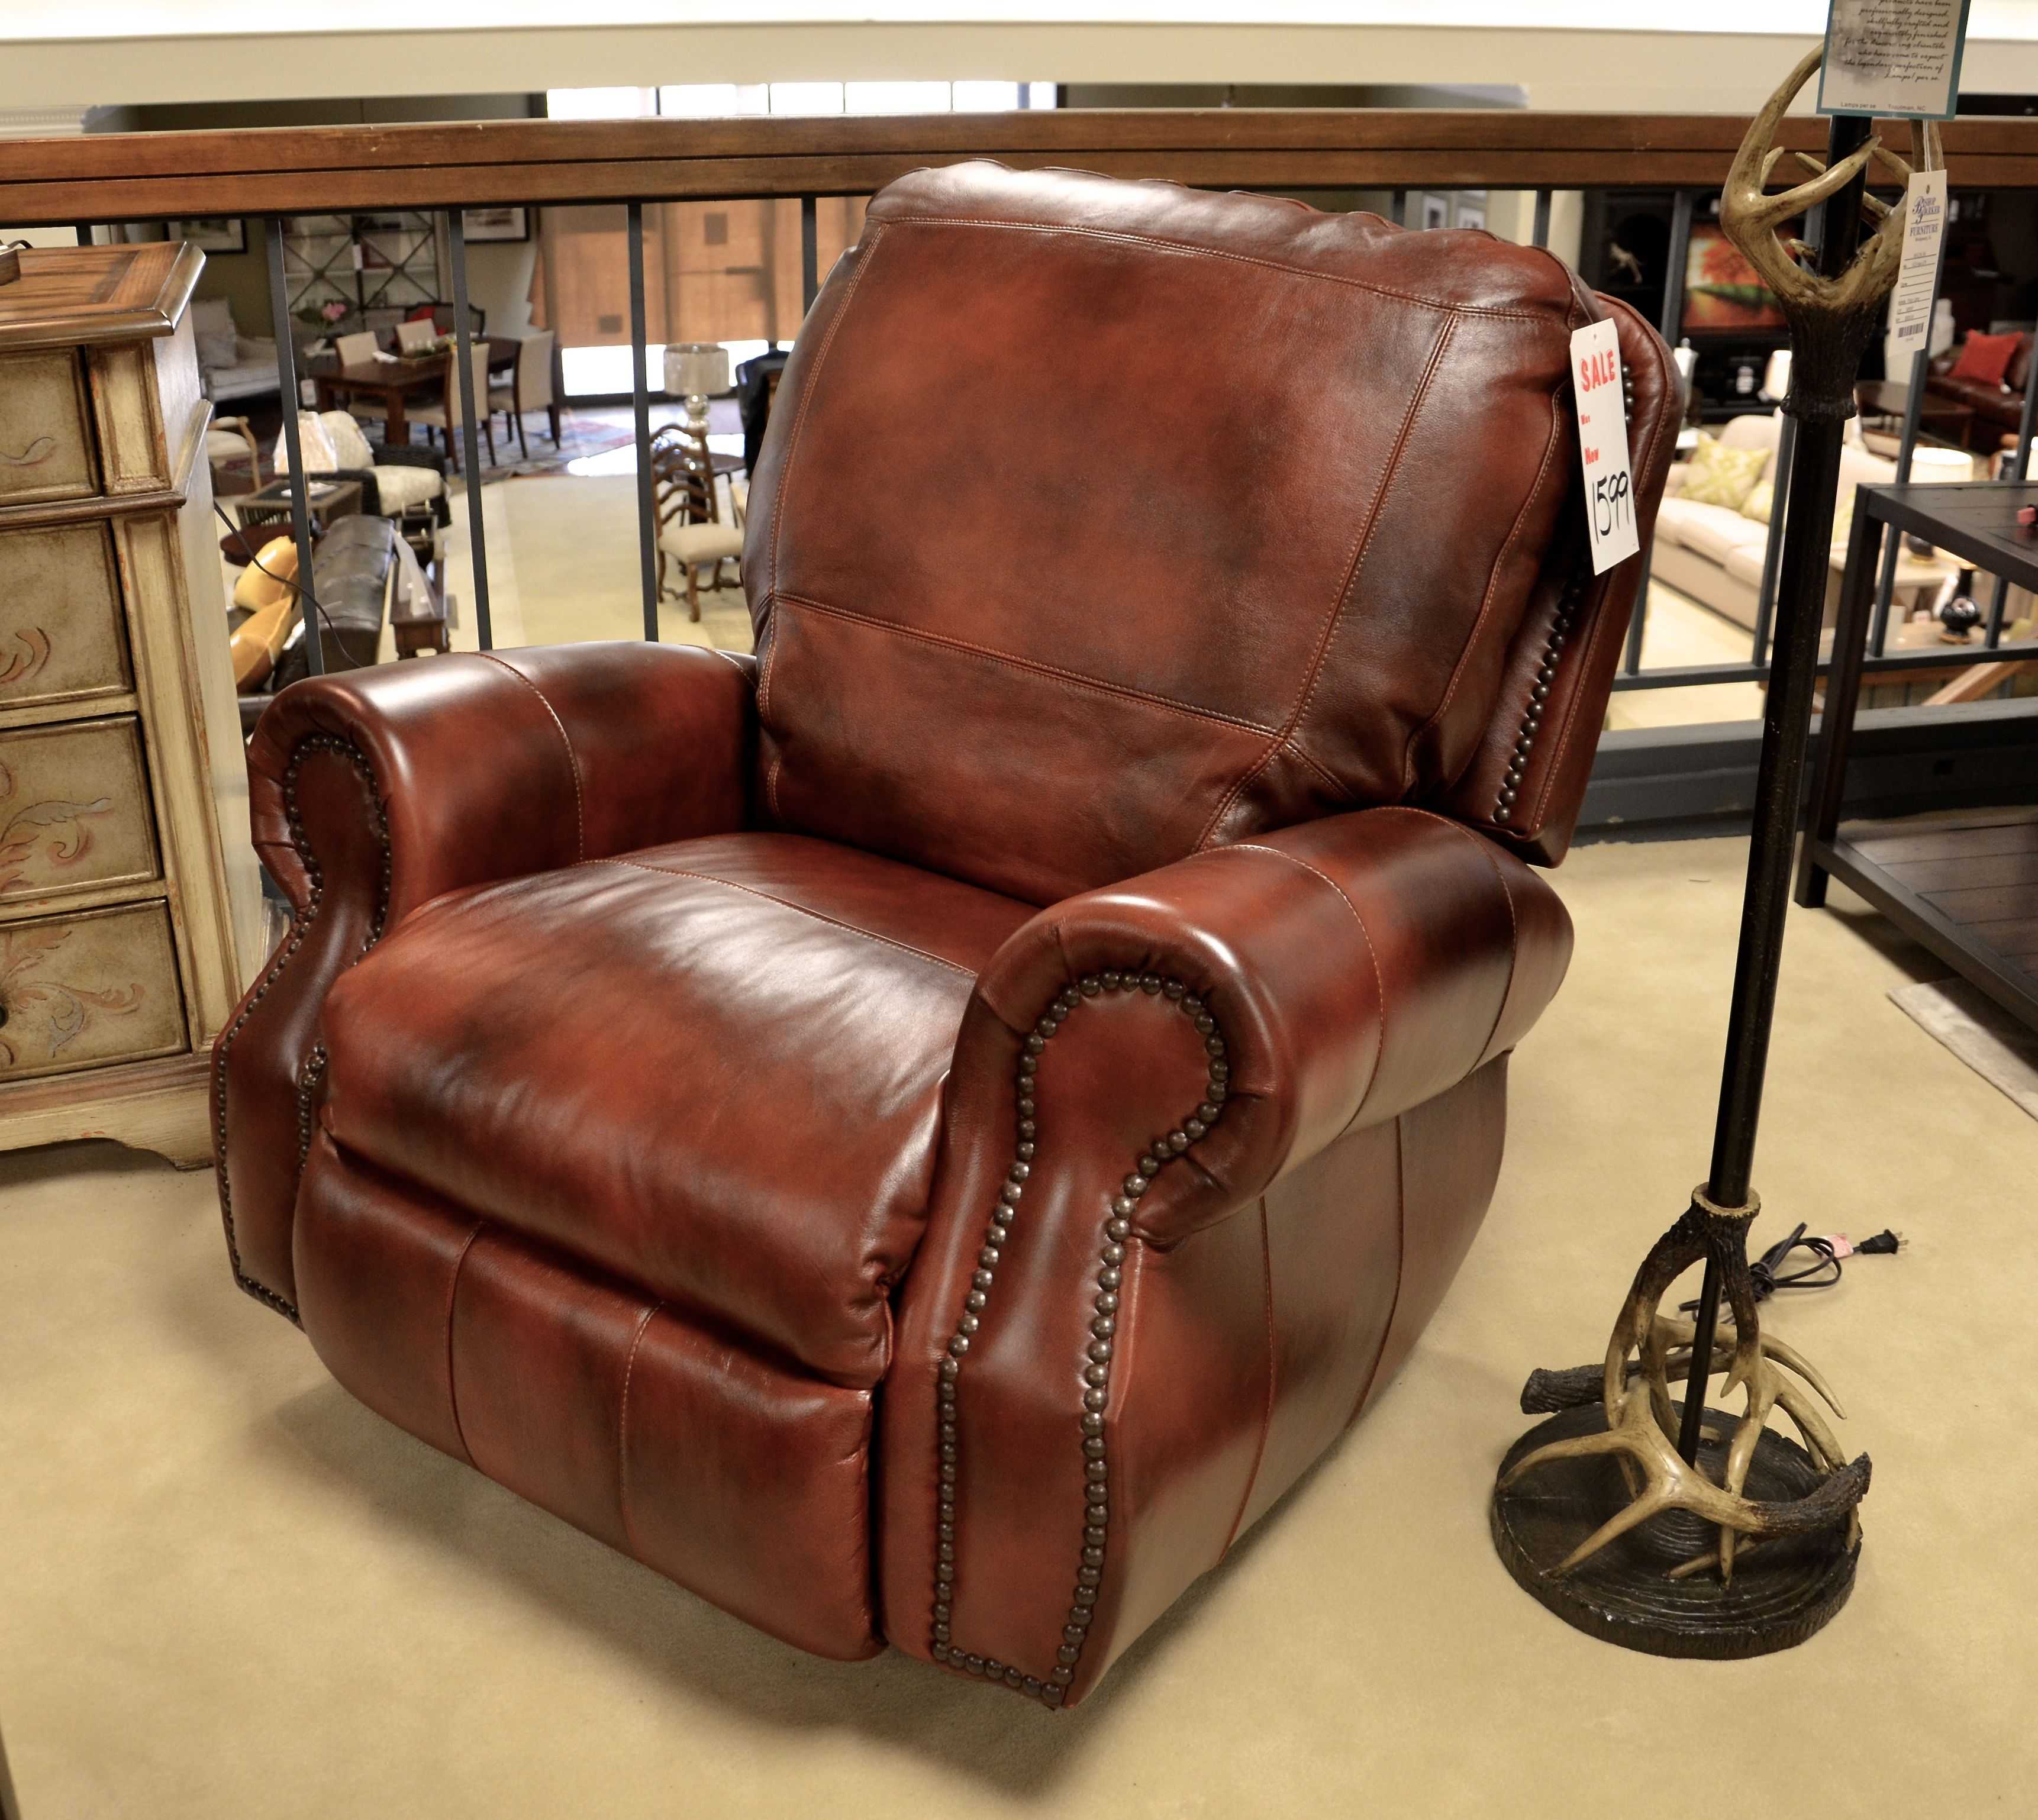 Baseball Leather Sofa Lazyboy Beds Russet Brown Recliner With Stitching And